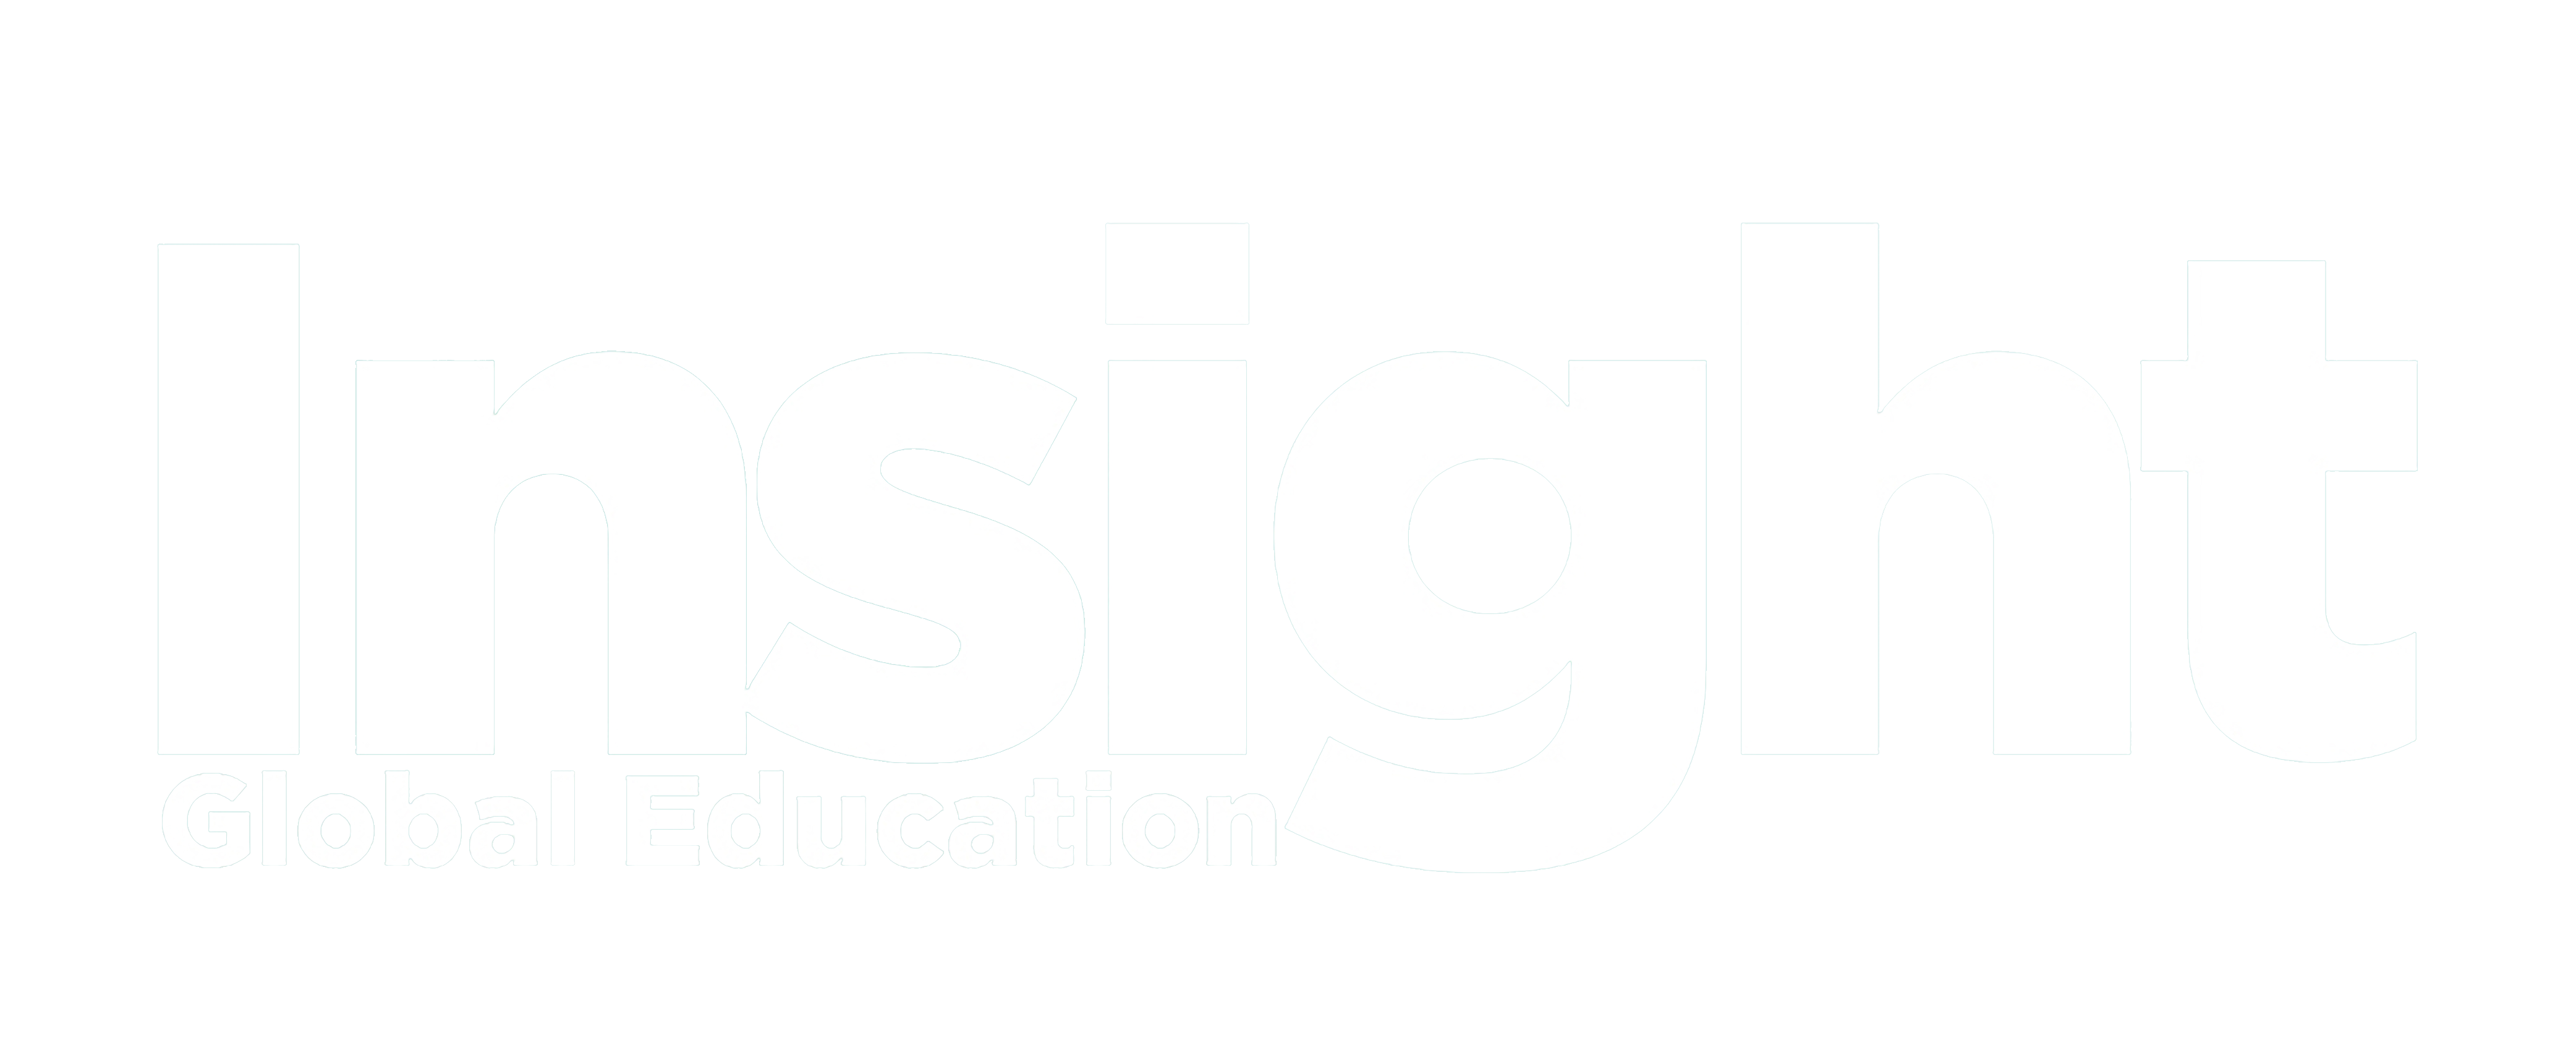 insight_logo_white.png